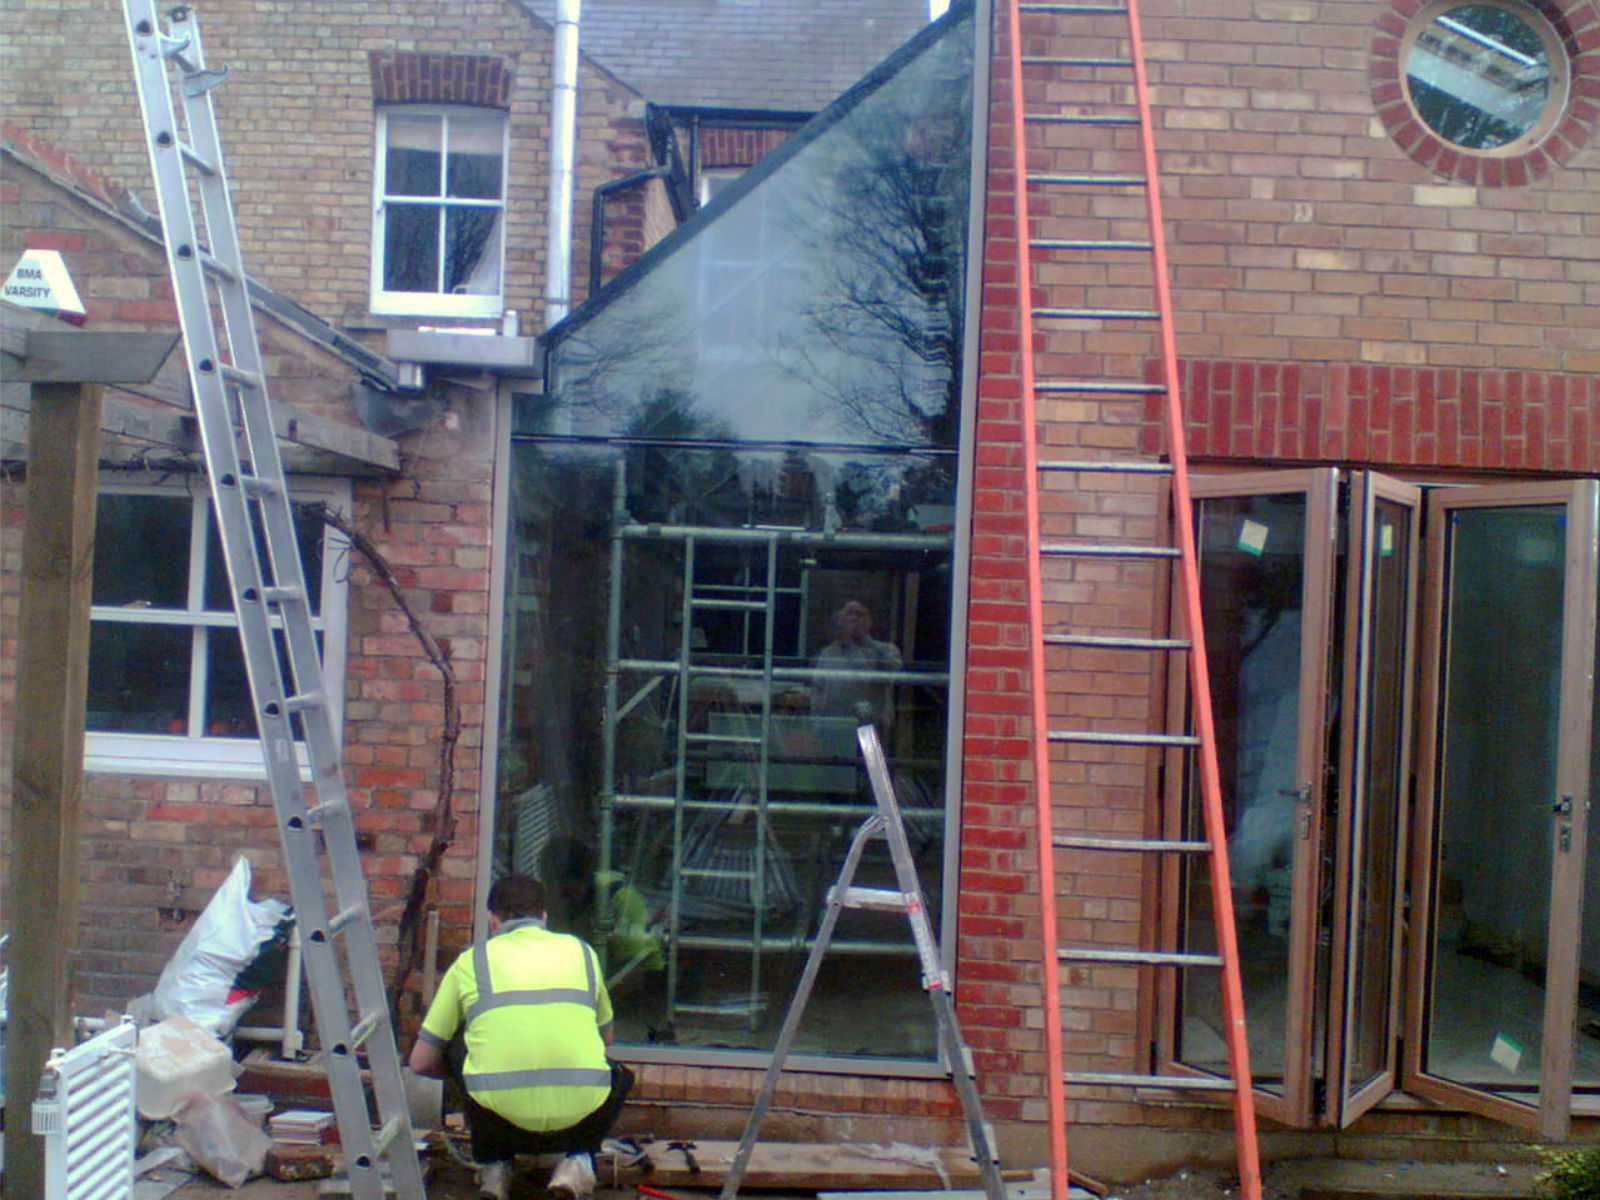 Install residential structural glass.